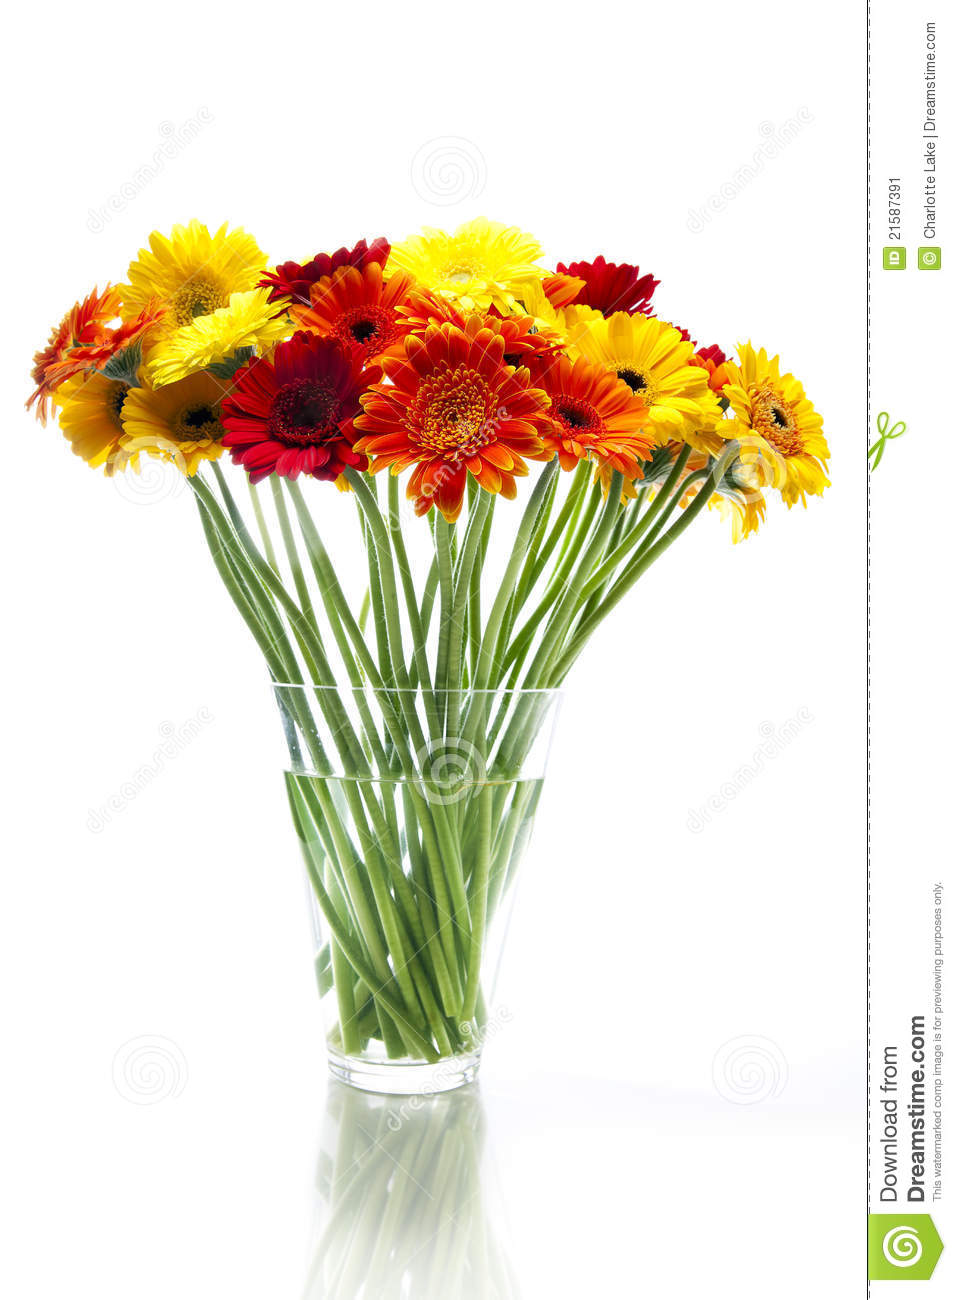 Daisies in vase stock image image of floral bouquet 21587391 daisies in vase reviewsmspy